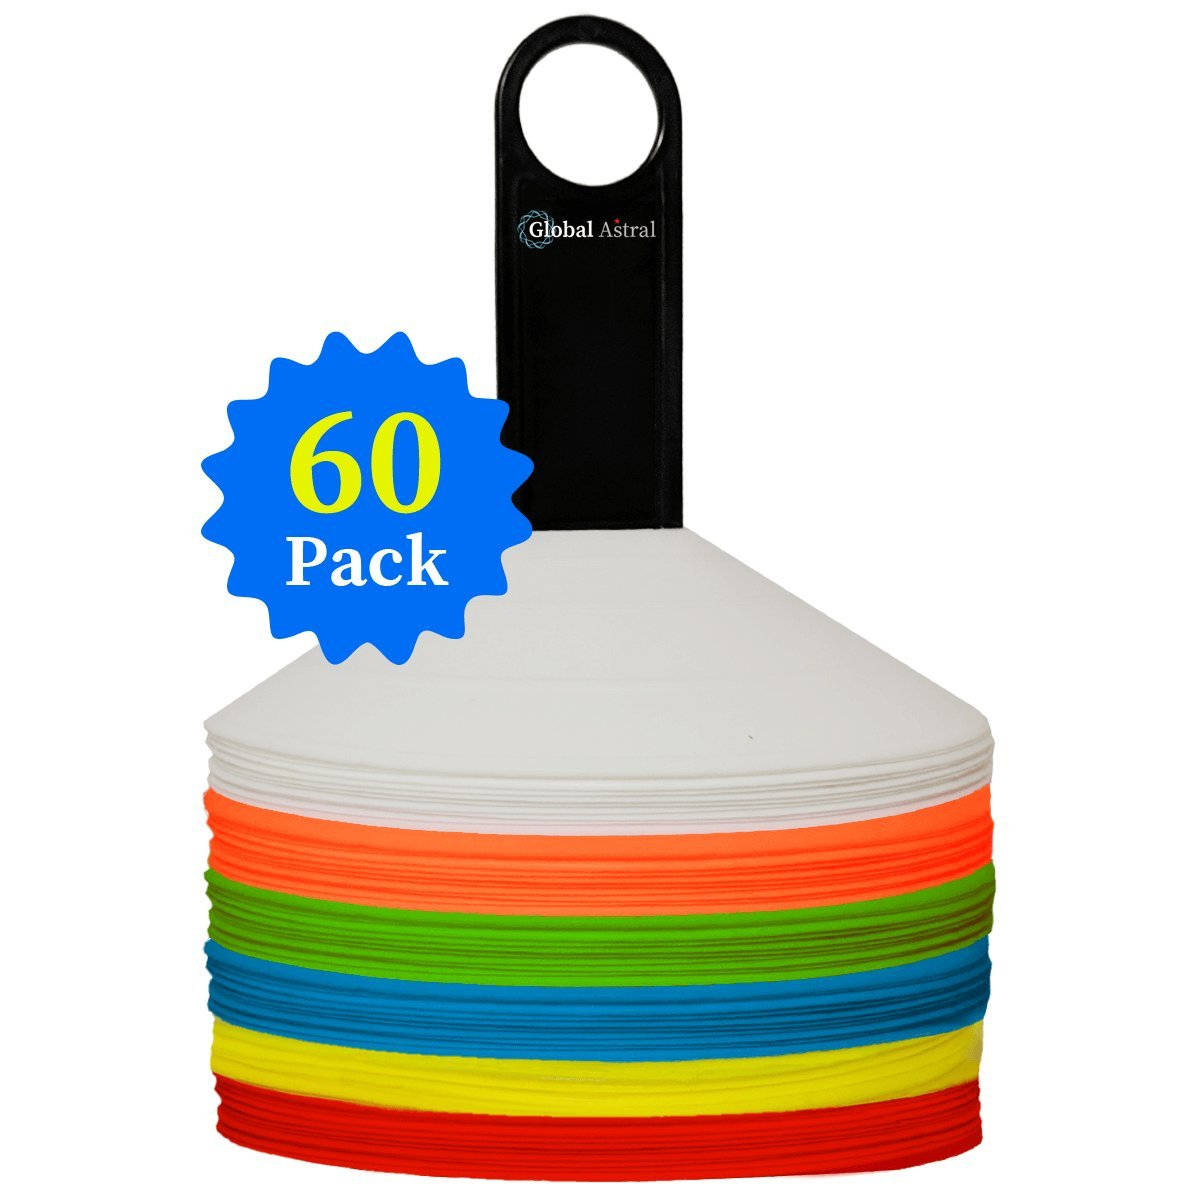 Global Astral Disc Cones - Set of 60, Soccer Disc Cones, Agility Cones For Sports, Drills, Football, Basketball, Slalom, Training, Exercise, Kids, Lacrosse - Field Markers Multi Color Training Cones